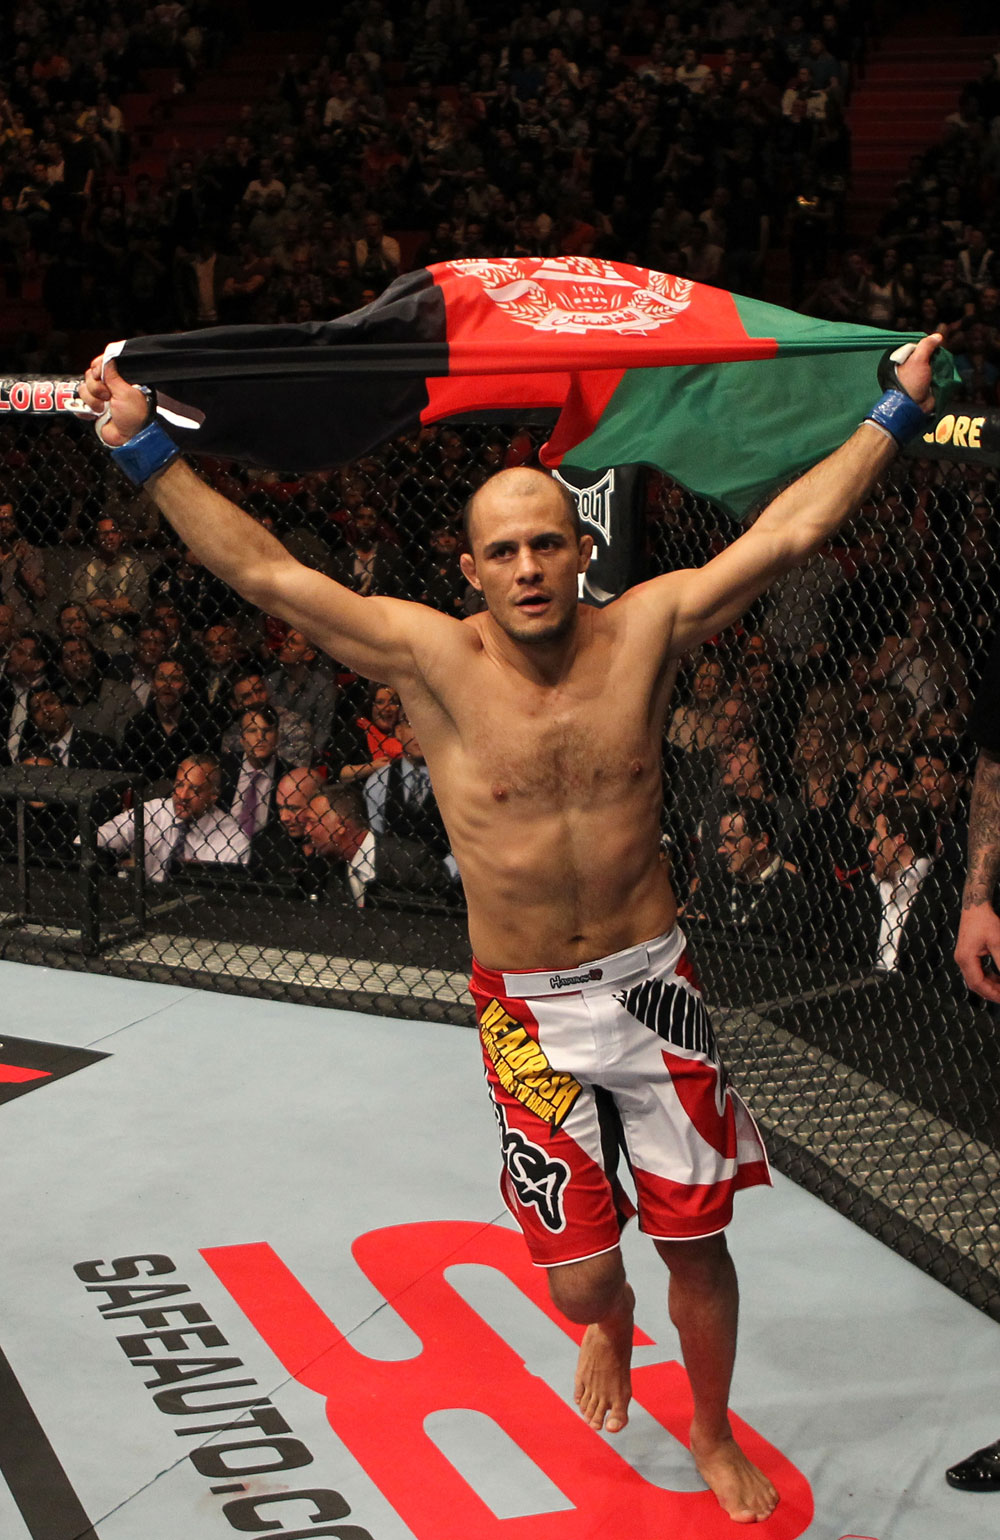 UFC welterweight Siyar Bahadurzada